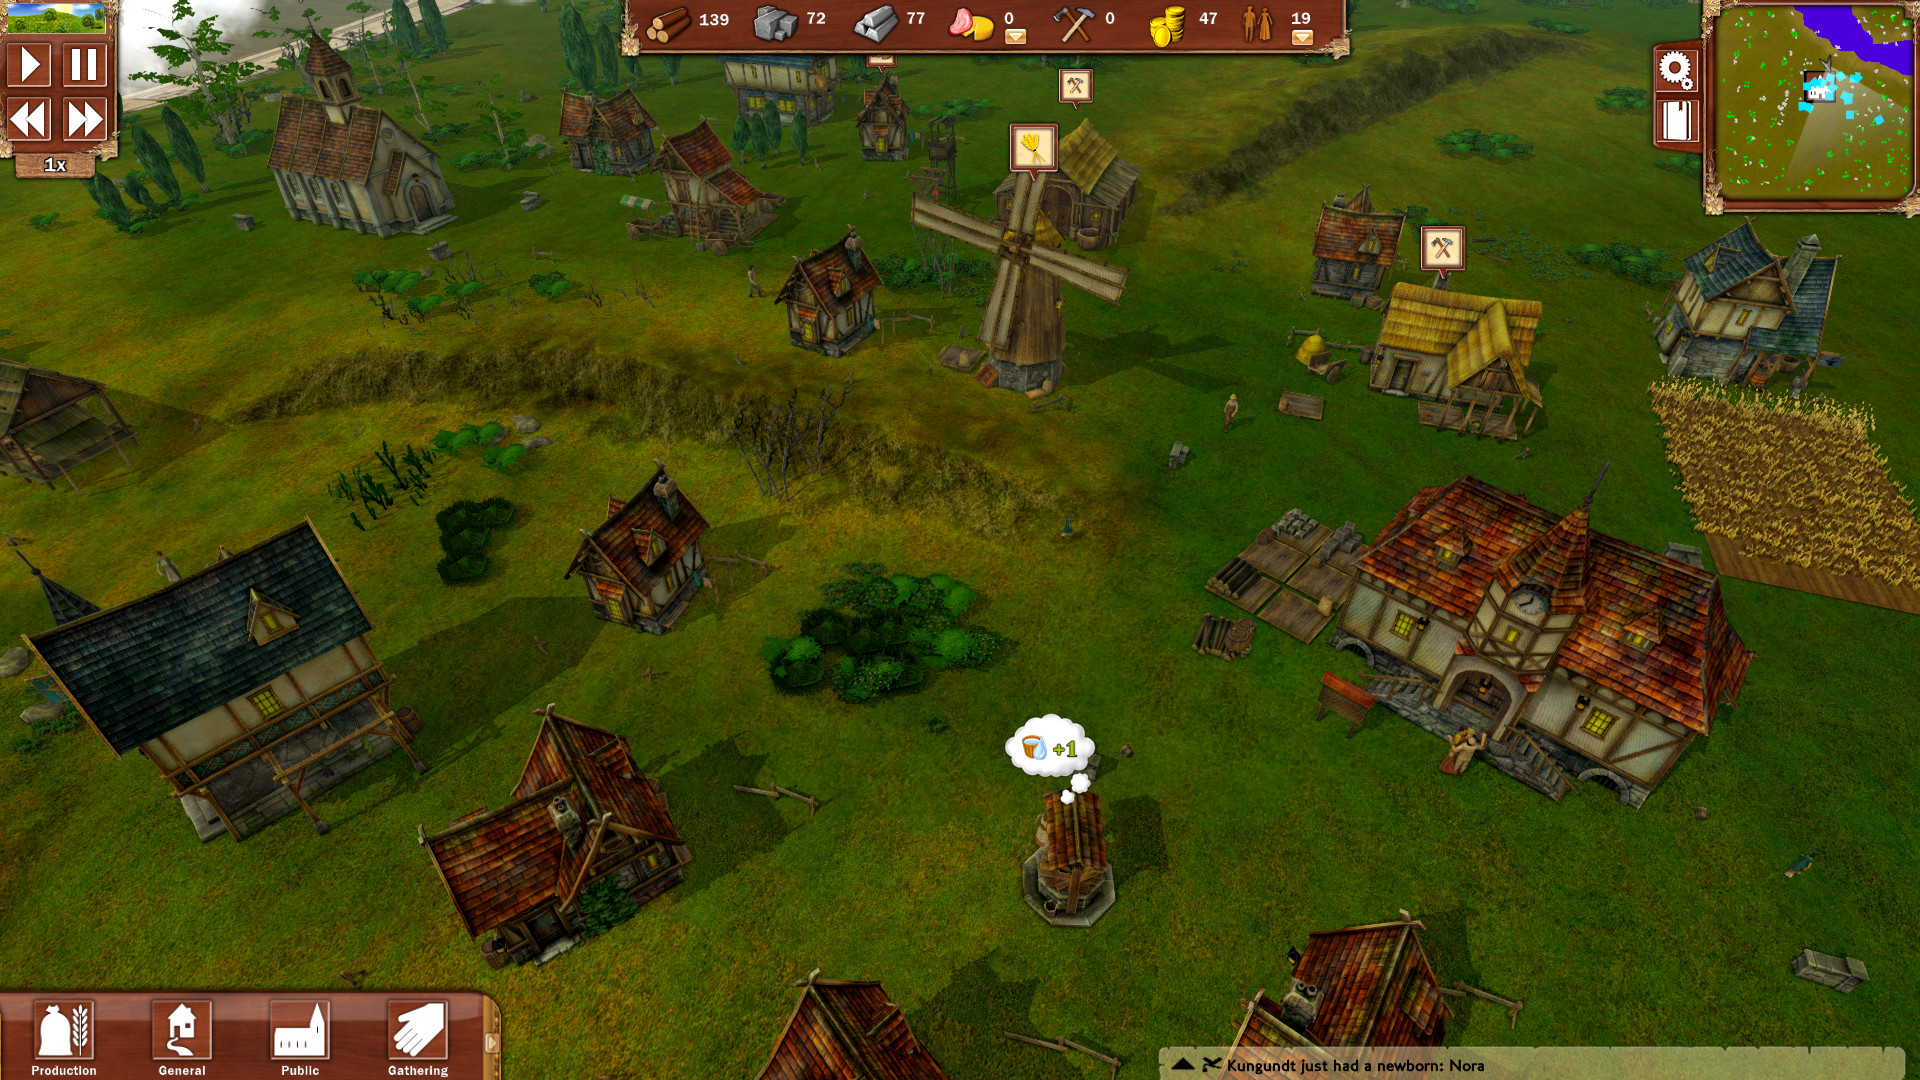 Villagers Screenshot 3